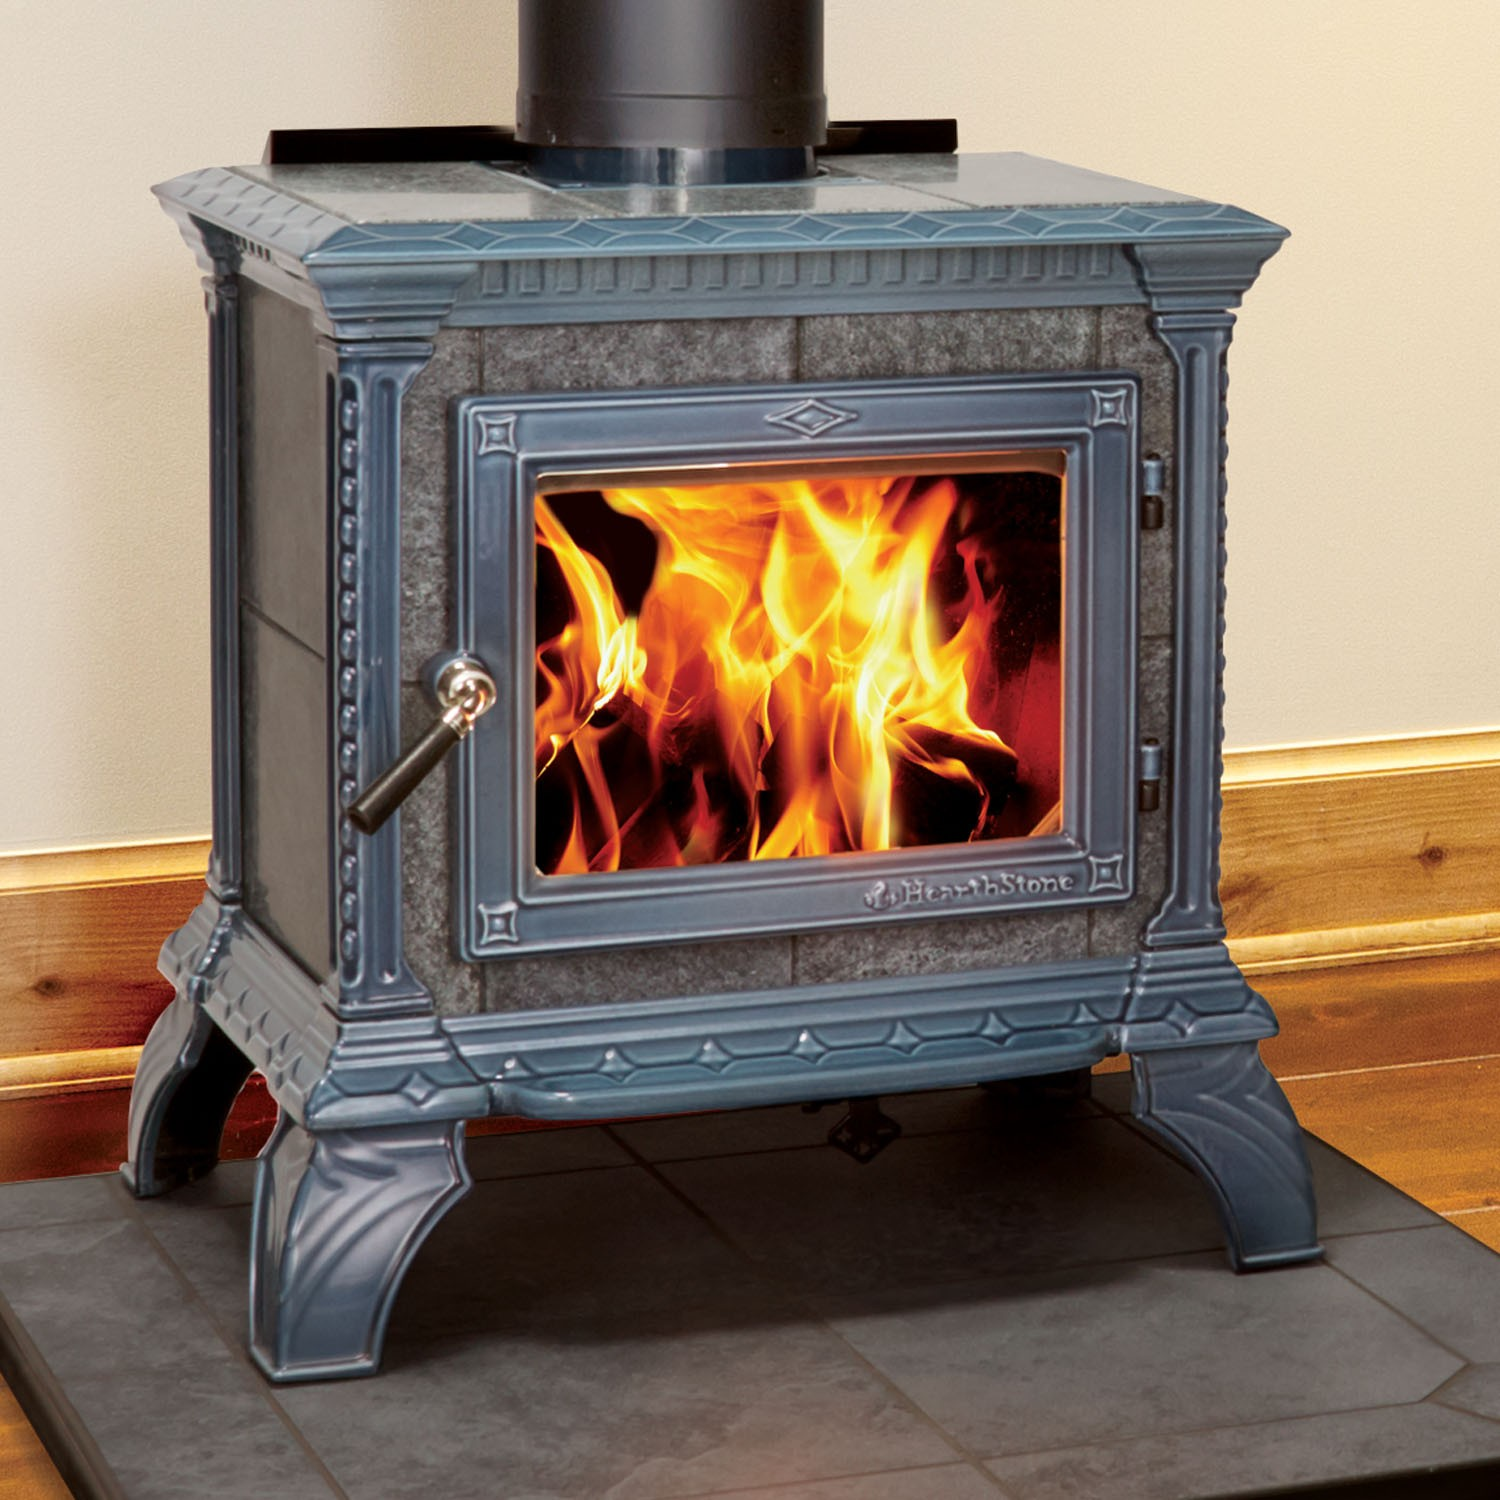 Small Freestanding Wood Stoves. QuadraFire 2100 · QuadraFire Explorer I ·  QuadraFire Discovery I · HearthStone Tribute - Freestanding Wood Stoves €� High Country Stoves & Fireplaces